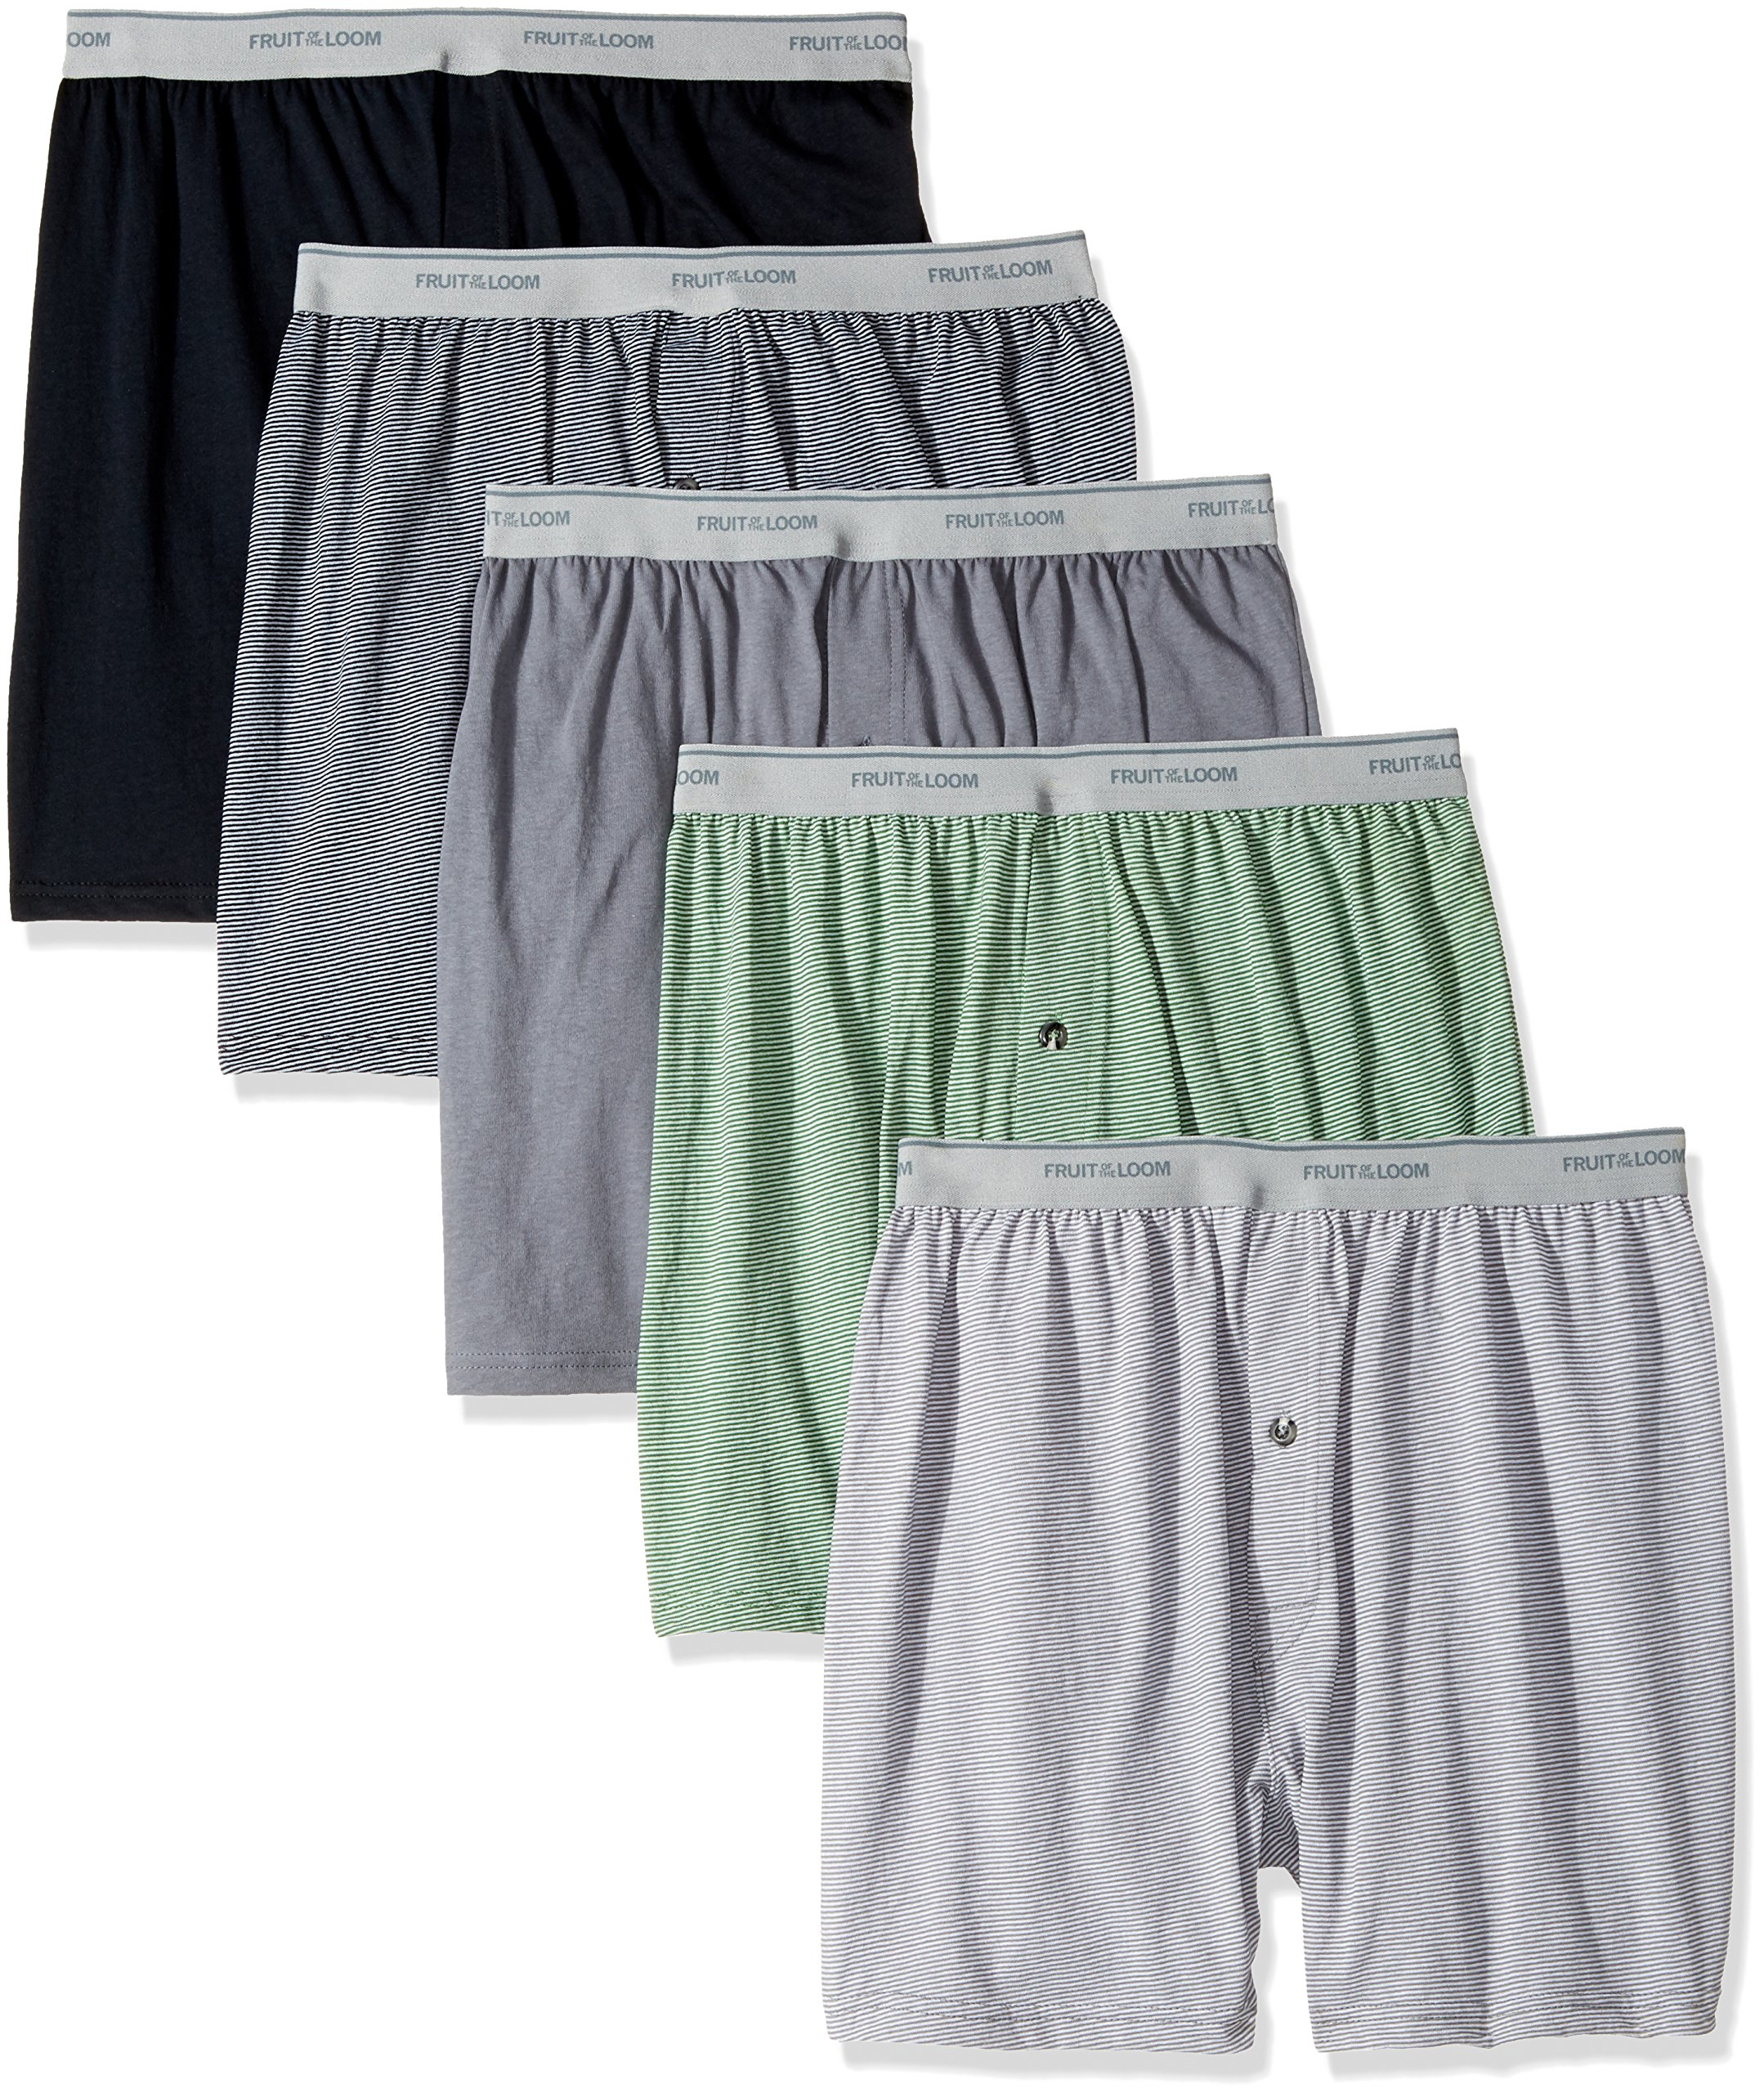 Fruit of the Loom Men's Exposed Waistband Knit Boxer (5 Pack), Assorted, Small